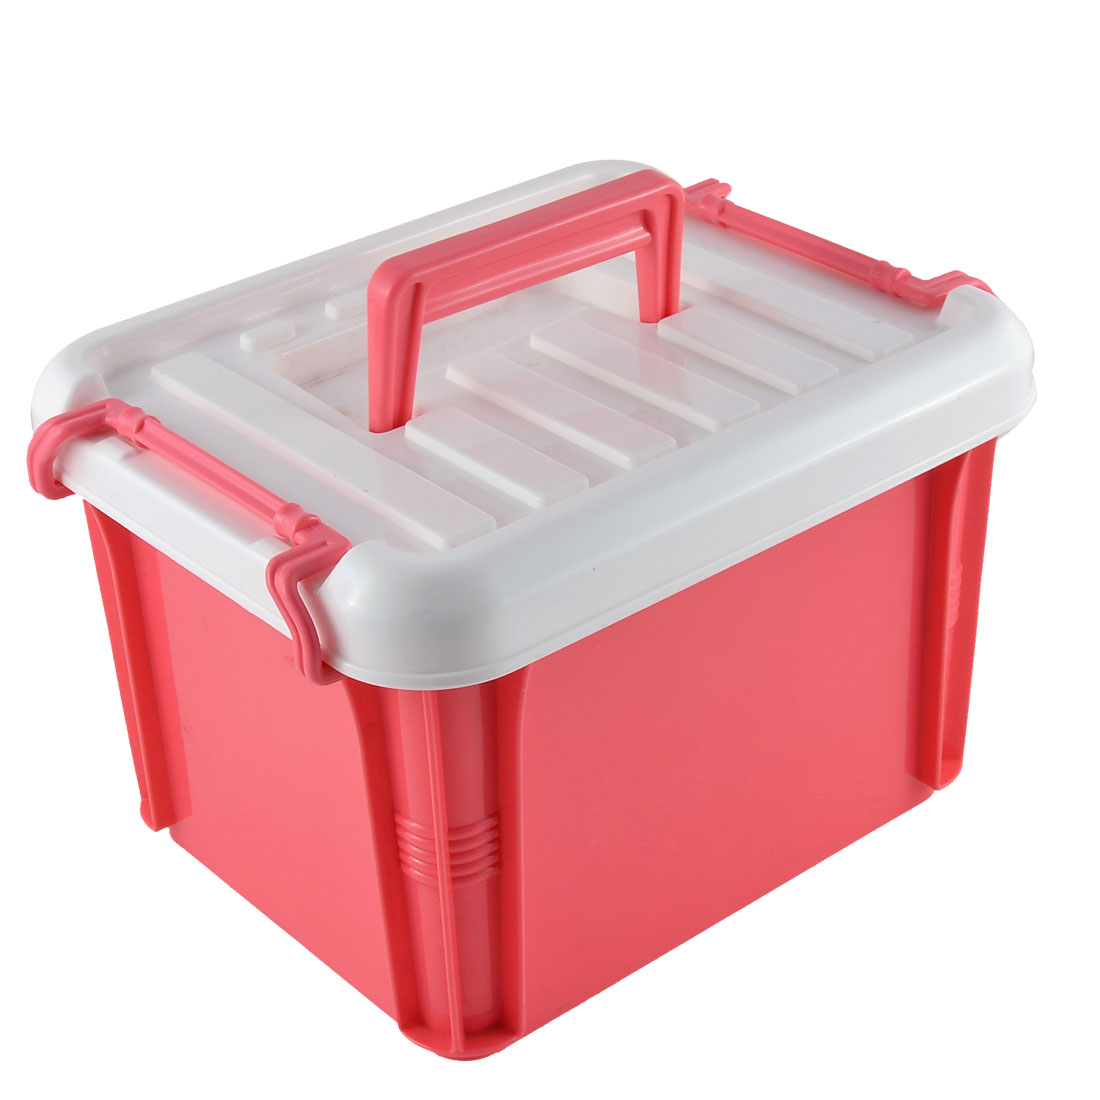 Household Dormitory Plastic Double Layer Storage Box Case Container Holder Red White